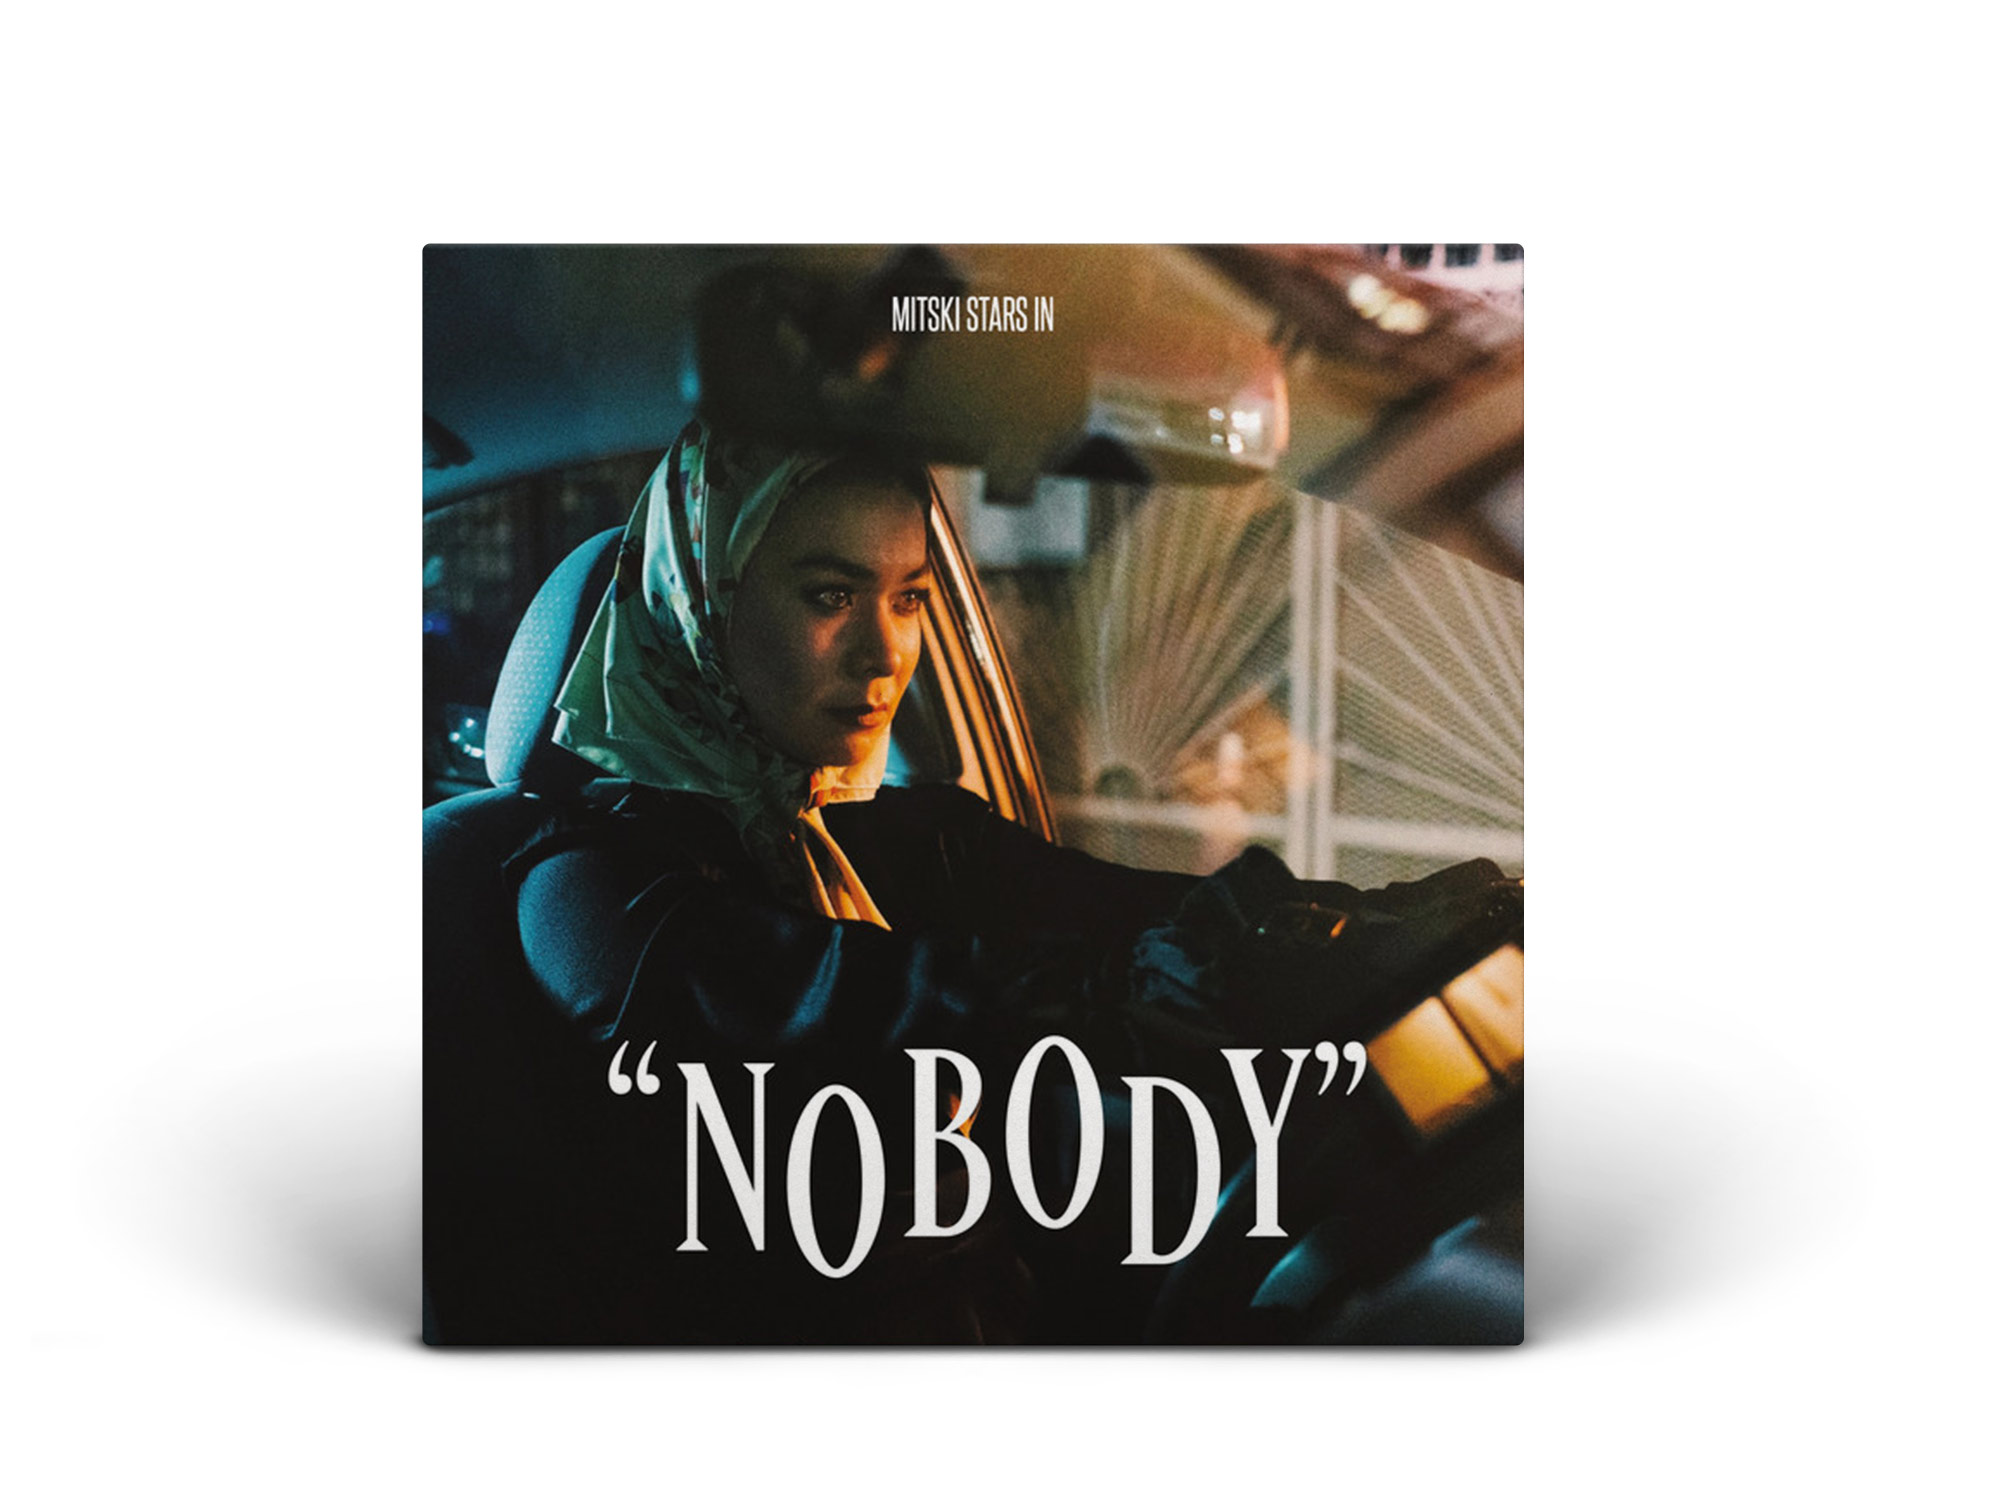 Nobody / Mitski - Best message in a bottle to yourself.